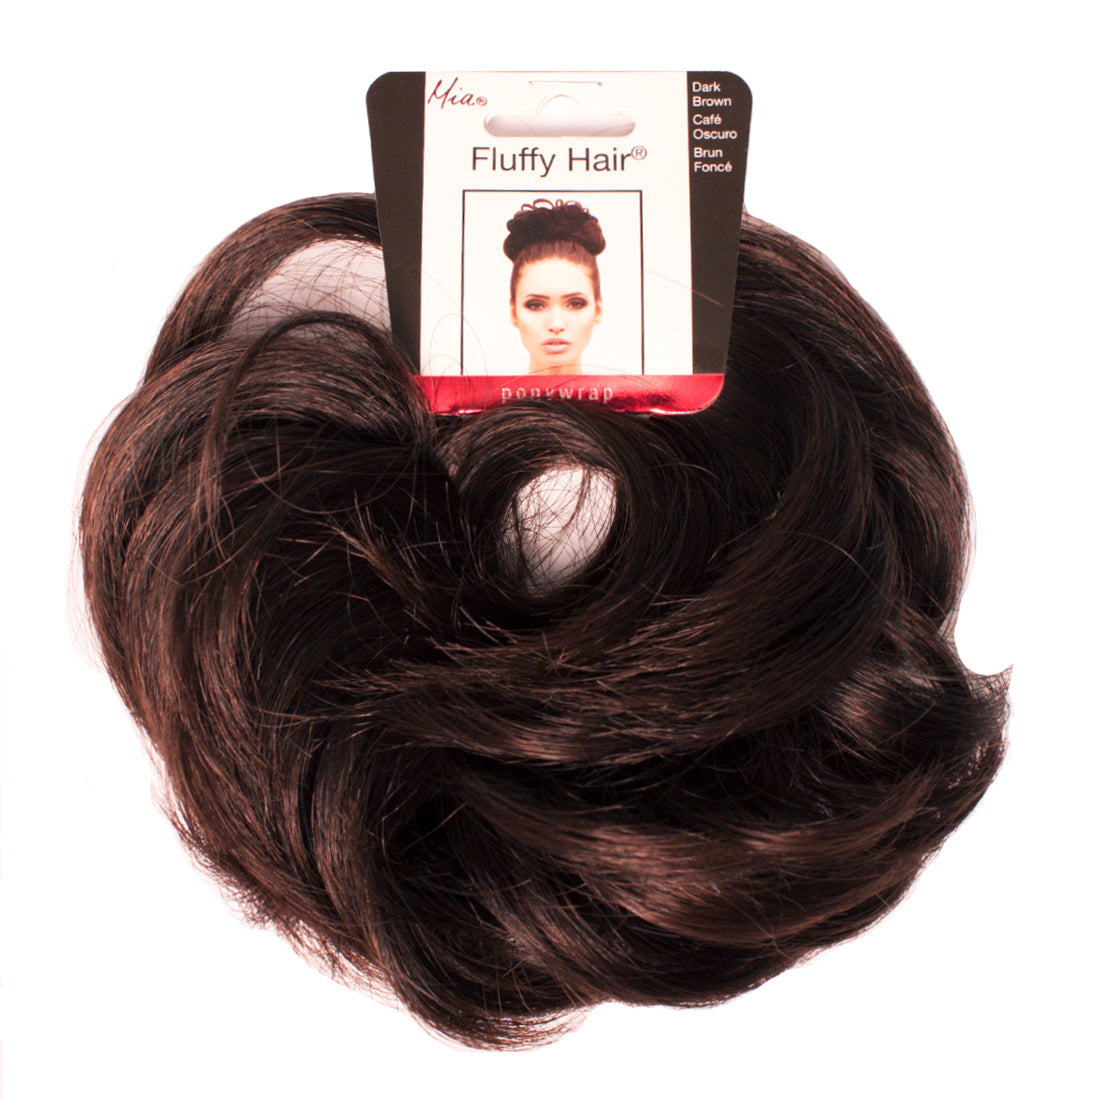 Fluffy Hair Ponywrap® - Dark Brown